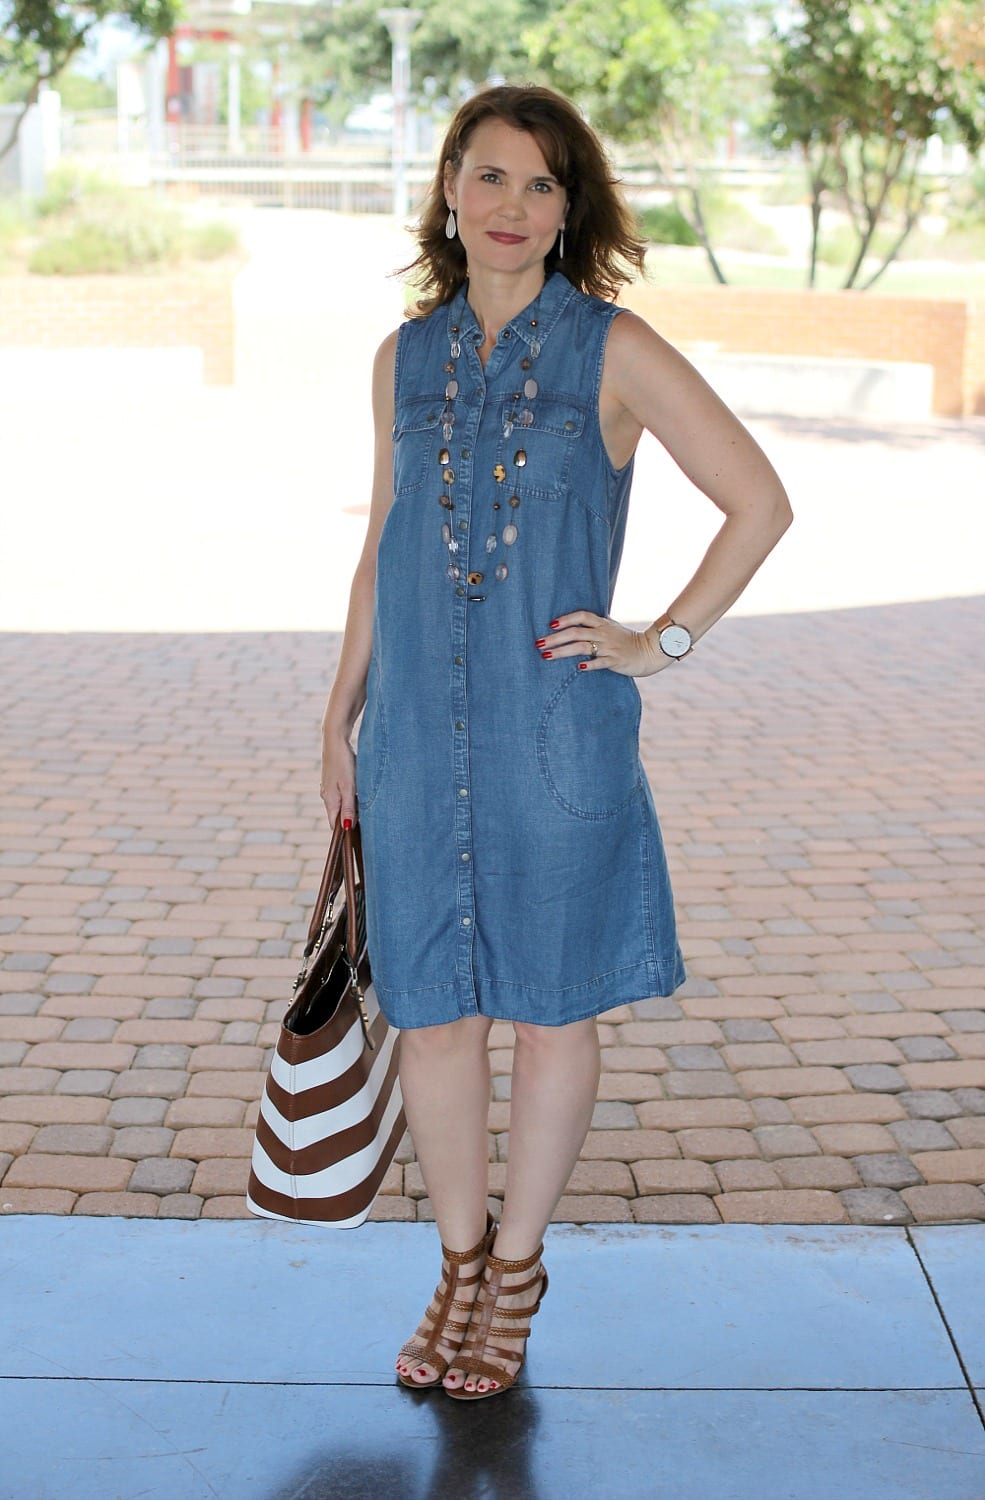 A versatile denim dress outfit that's perfect as your go-to summer dress.